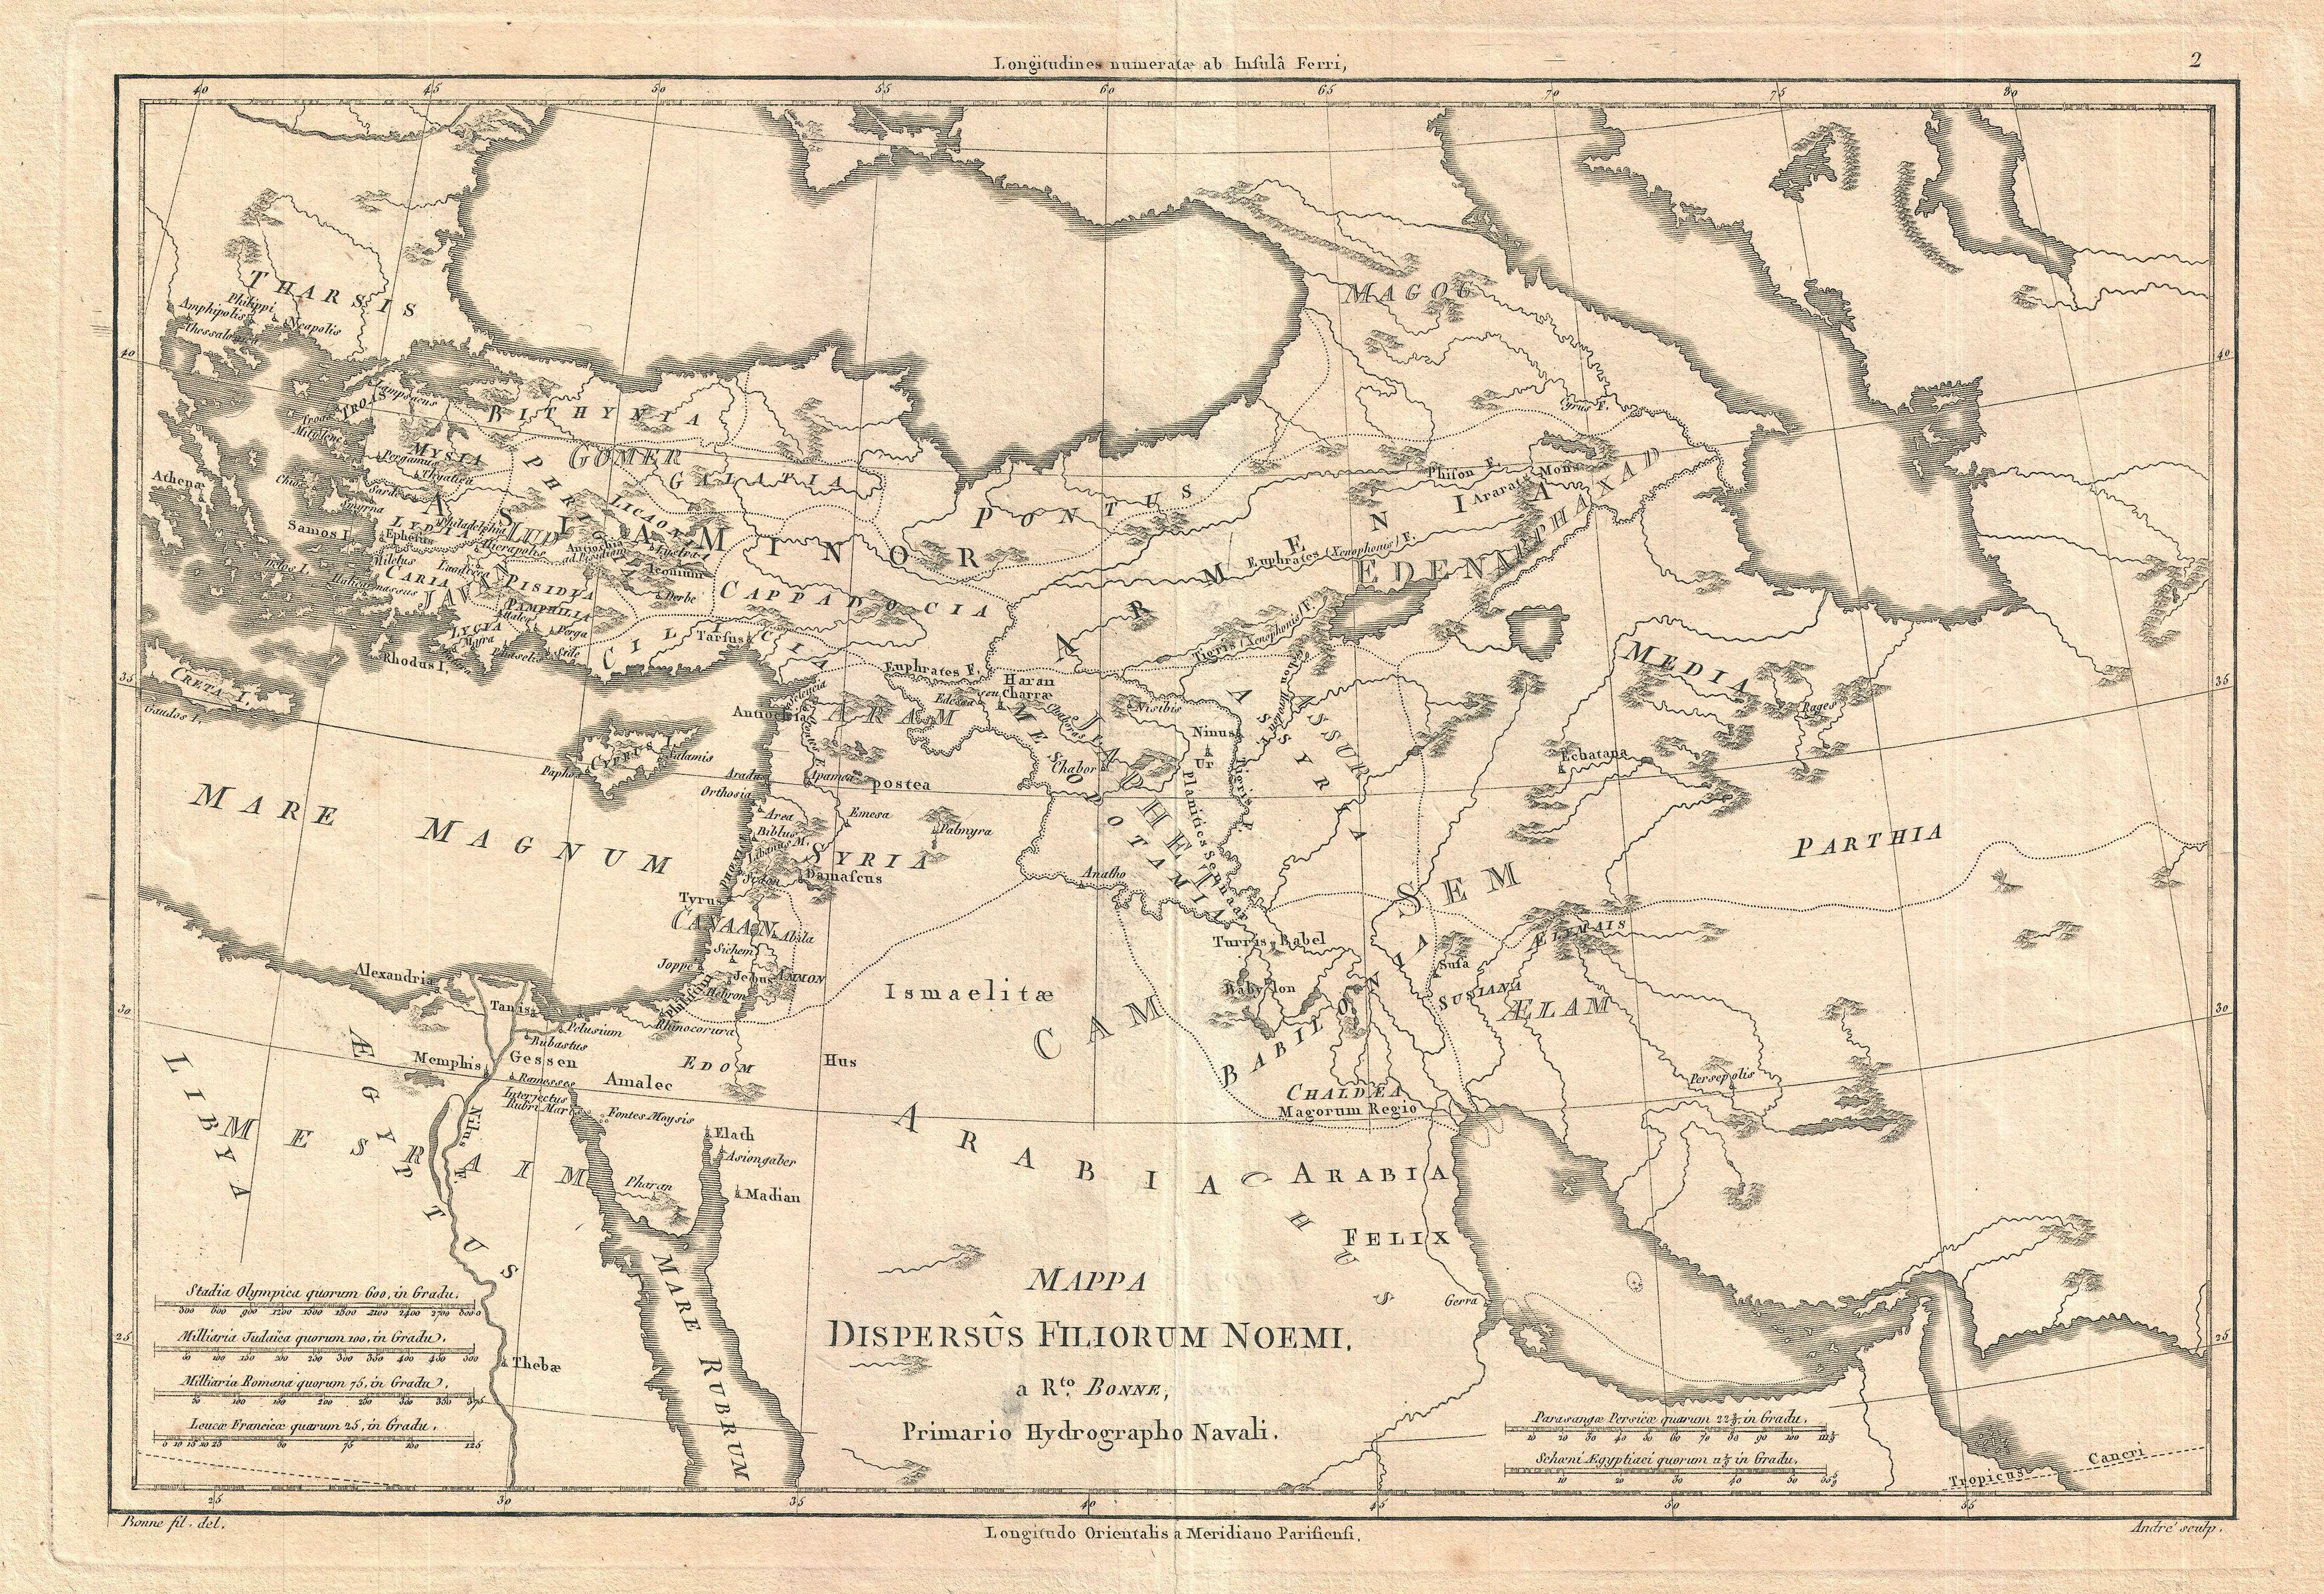 File:1787 Bonne Map of the Dispersal of the Sons of Noah ... on map of dumah, map of magog, map of shinar, map of togarmah, map of hebrews, map of ishmaelites, map of cush, map of michmash, map of kingdom of kush, map of moreh, map of ham, map of aroer, map of japheth, map of aram, map of shem, map of nahor,